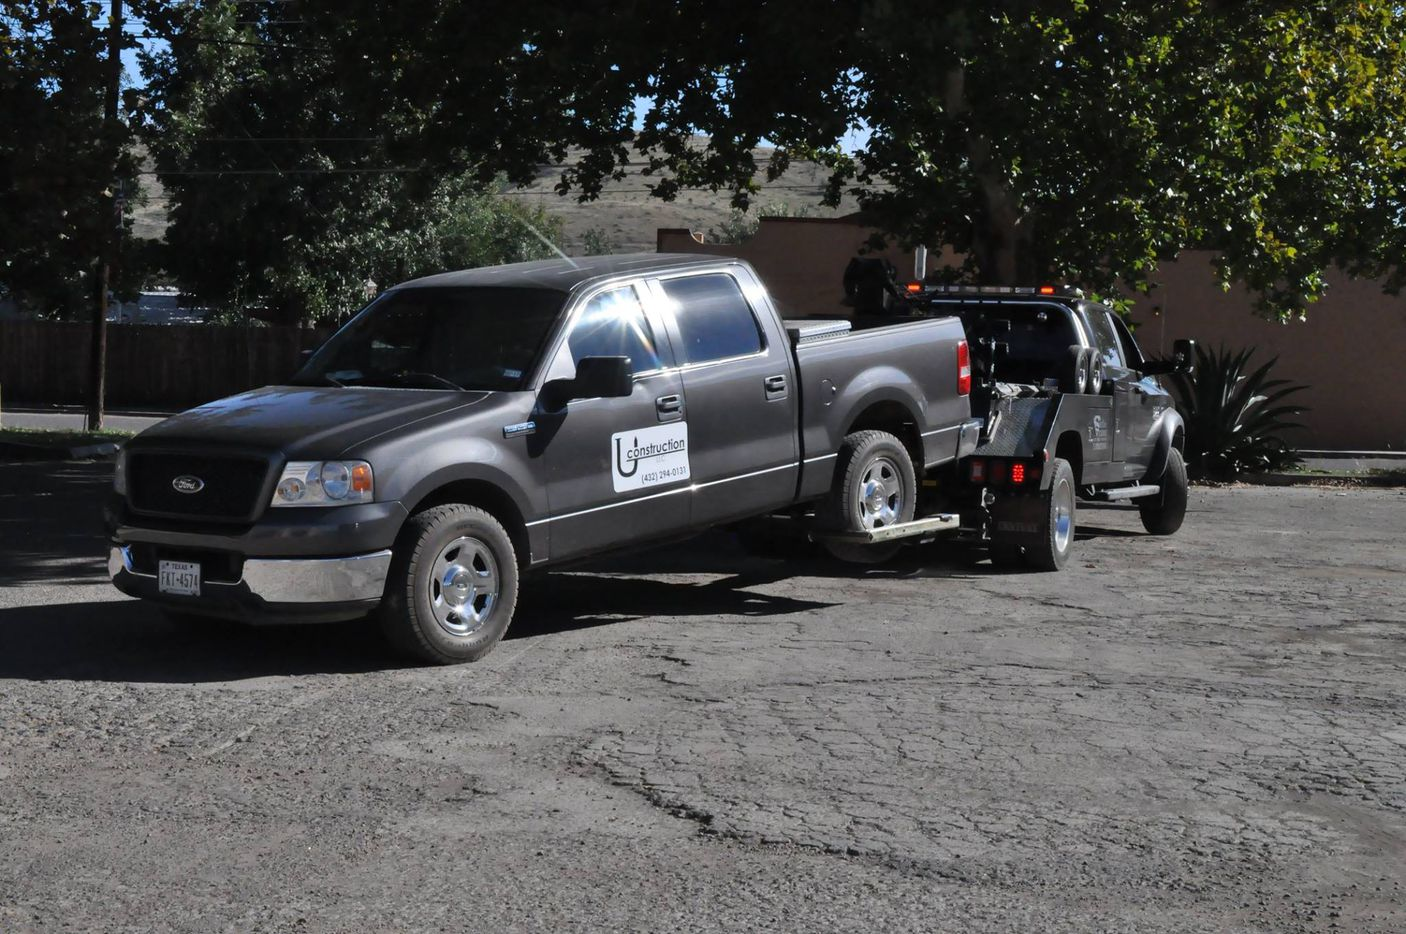 The gray truck police are asking for information about.